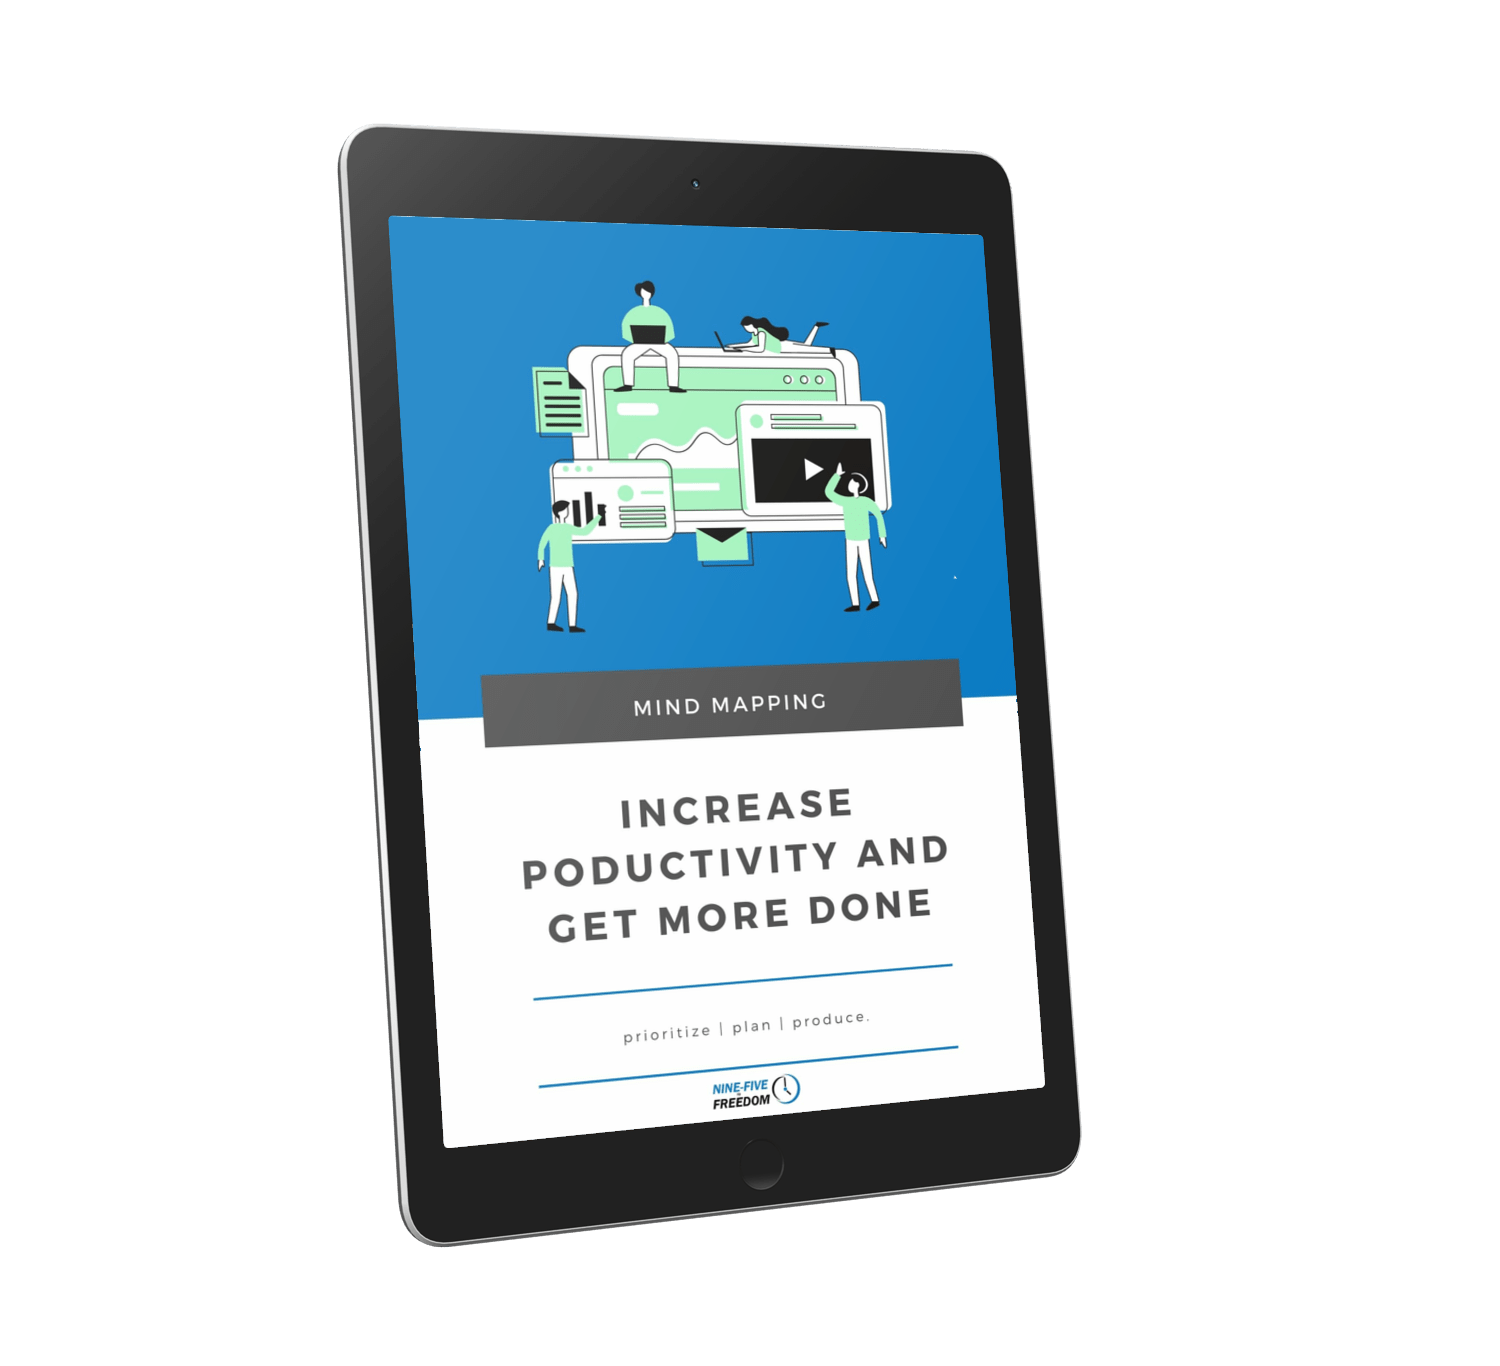 Mock-Up image of the productivity workbook on a tablet device